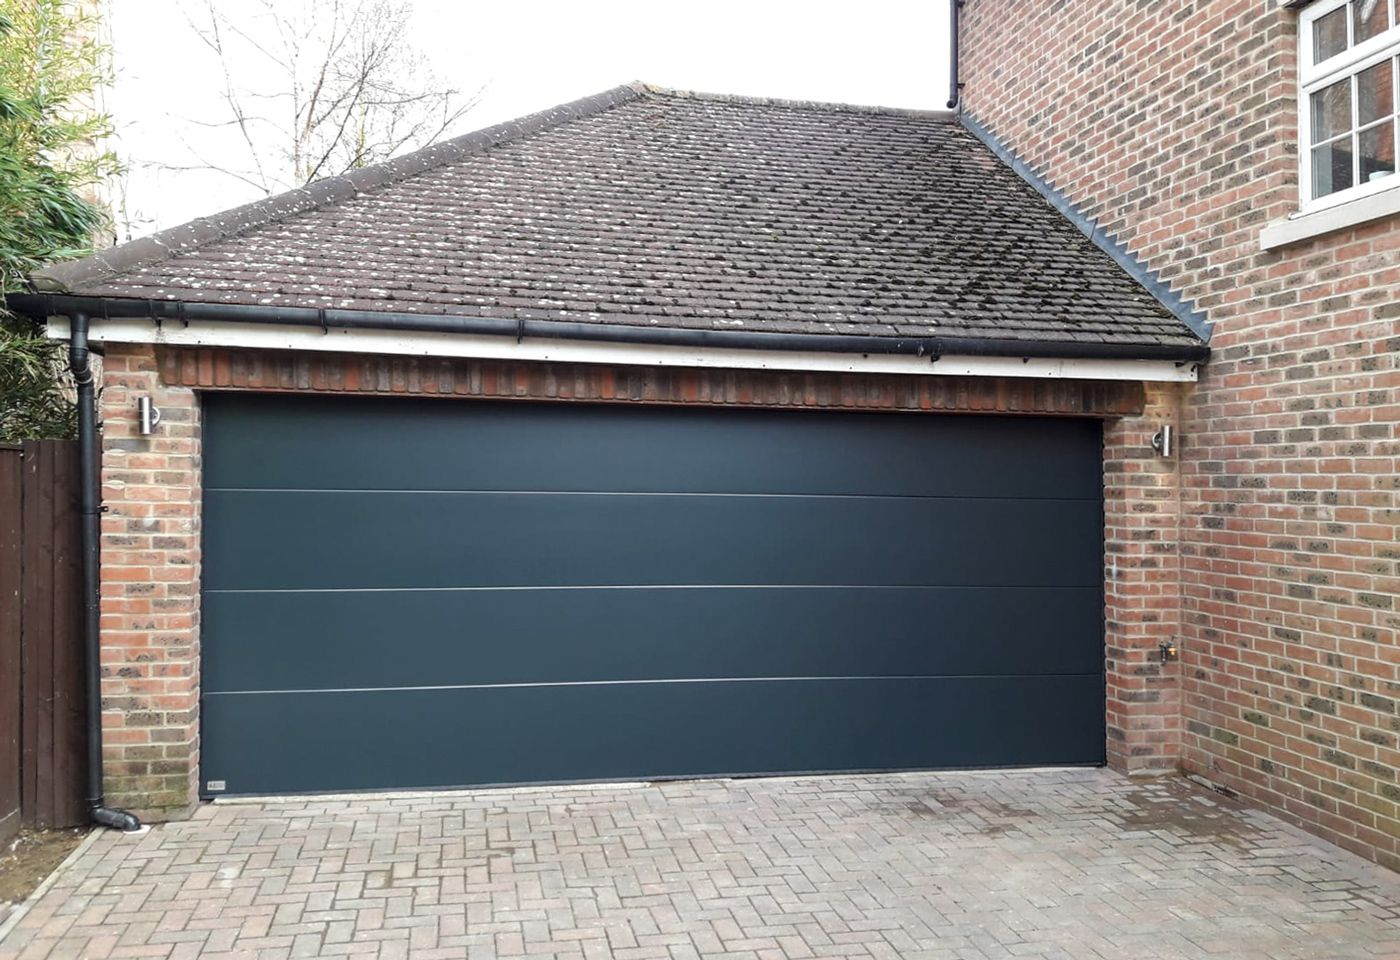 Sws Double Elite Automated Sectional Garage Door Finished In Anthracite Grey In 2020 Sectional Garage Doors Garage Doors Doors